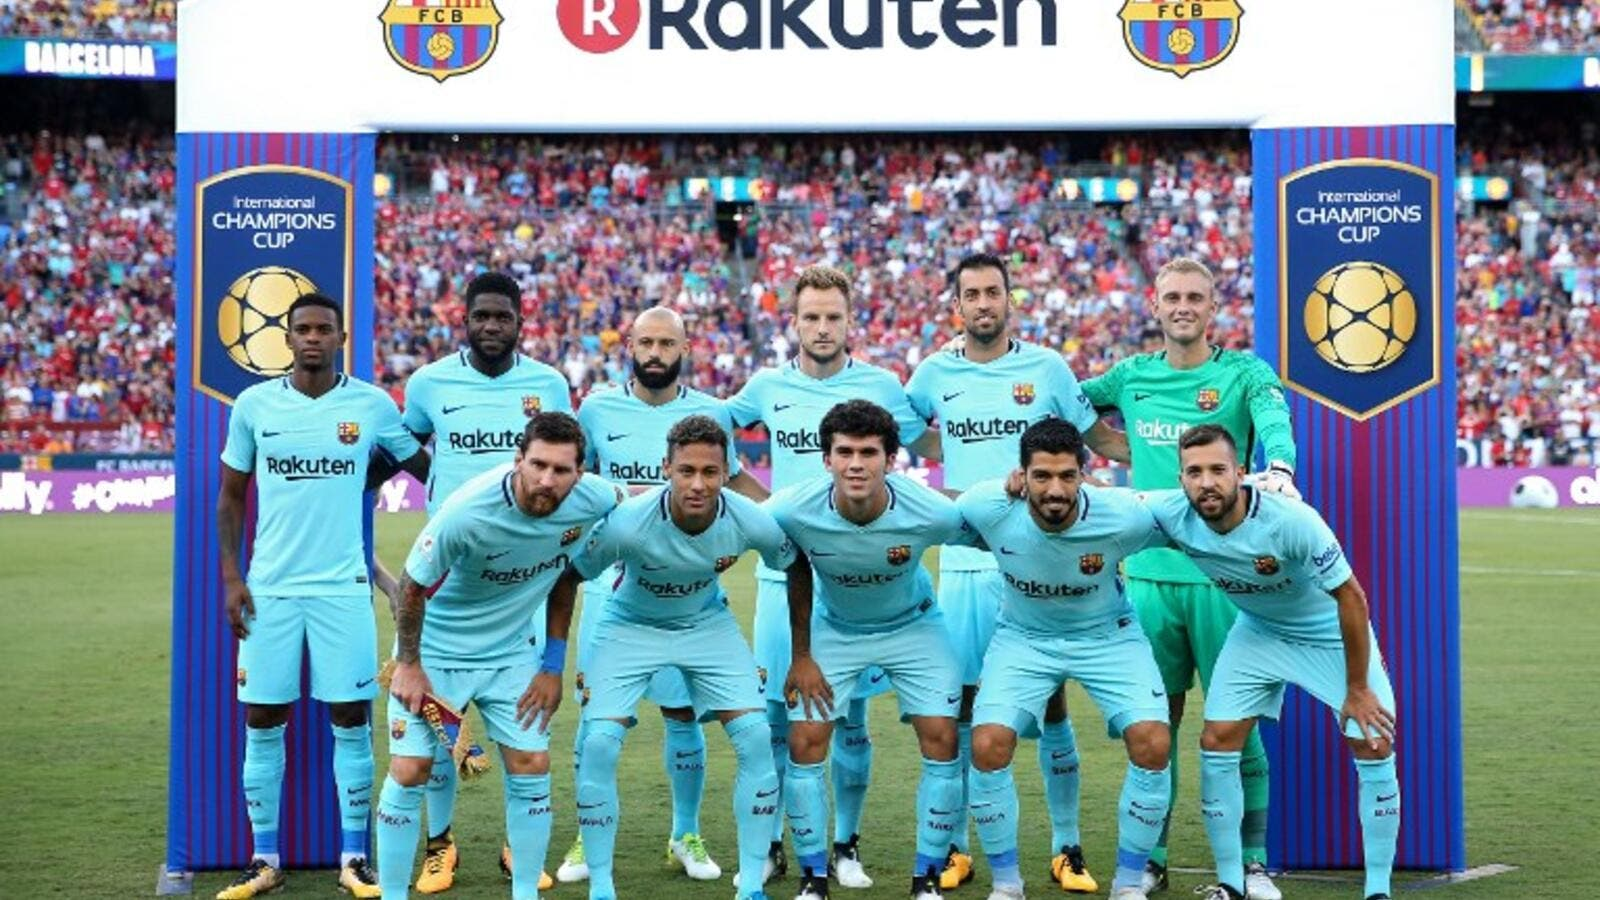 0ff50bfb751 FC Barcelona to play without names